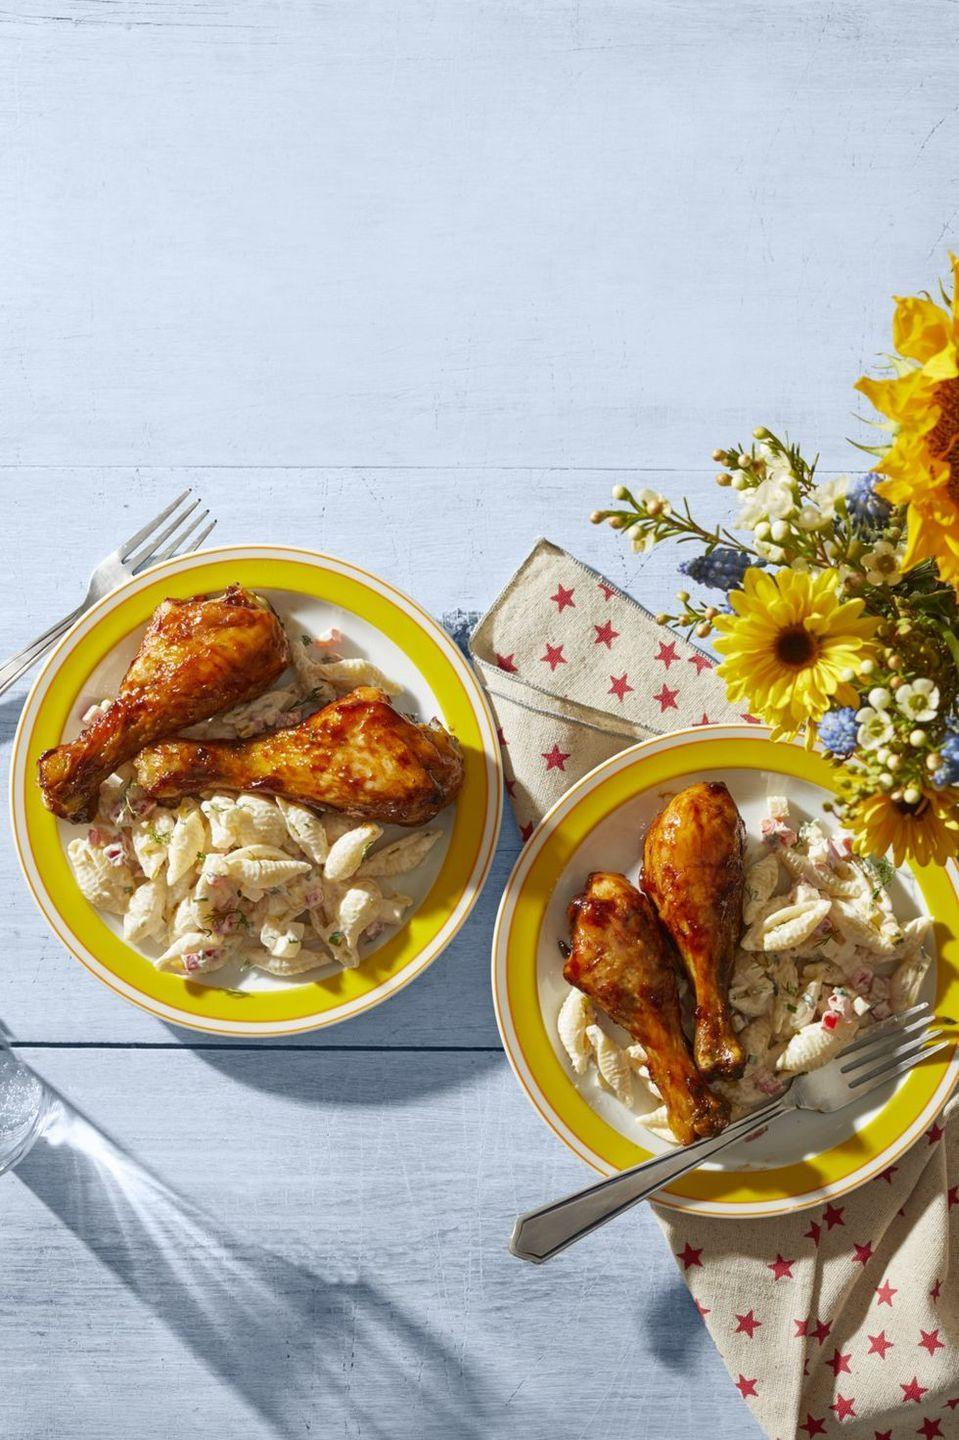 "<p>This homemade barbecue sauce makes the best chicken drumsticks. Serve it with macaroni salad, potato salad, or your favorite summer sides. </p><p><a href=""https://www.thepioneerwoman.com/food-cooking/recipes/a32346143/barbecue-chicken-drumsticks-recipe/"" rel=""nofollow noopener"" target=""_blank"" data-ylk=""slk:Get Ree's recipe."" class=""link rapid-noclick-resp""><strong>Get Ree's recipe. </strong></a></p><p><a class=""link rapid-noclick-resp"" href=""https://go.redirectingat.com?id=74968X1596630&url=https%3A%2F%2Fwww.walmart.com%2Fsearch%2F%3Fquery%3Dbasting%2Bbrush&sref=https%3A%2F%2Fwww.thepioneerwoman.com%2Ffood-cooking%2Fmeals-menus%2Fg36109352%2Ffathers-day-dinner-recipes%2F"" rel=""nofollow noopener"" target=""_blank"" data-ylk=""slk:SHOP BASTING BRUSHES"">SHOP BASTING BRUSHES</a></p>"